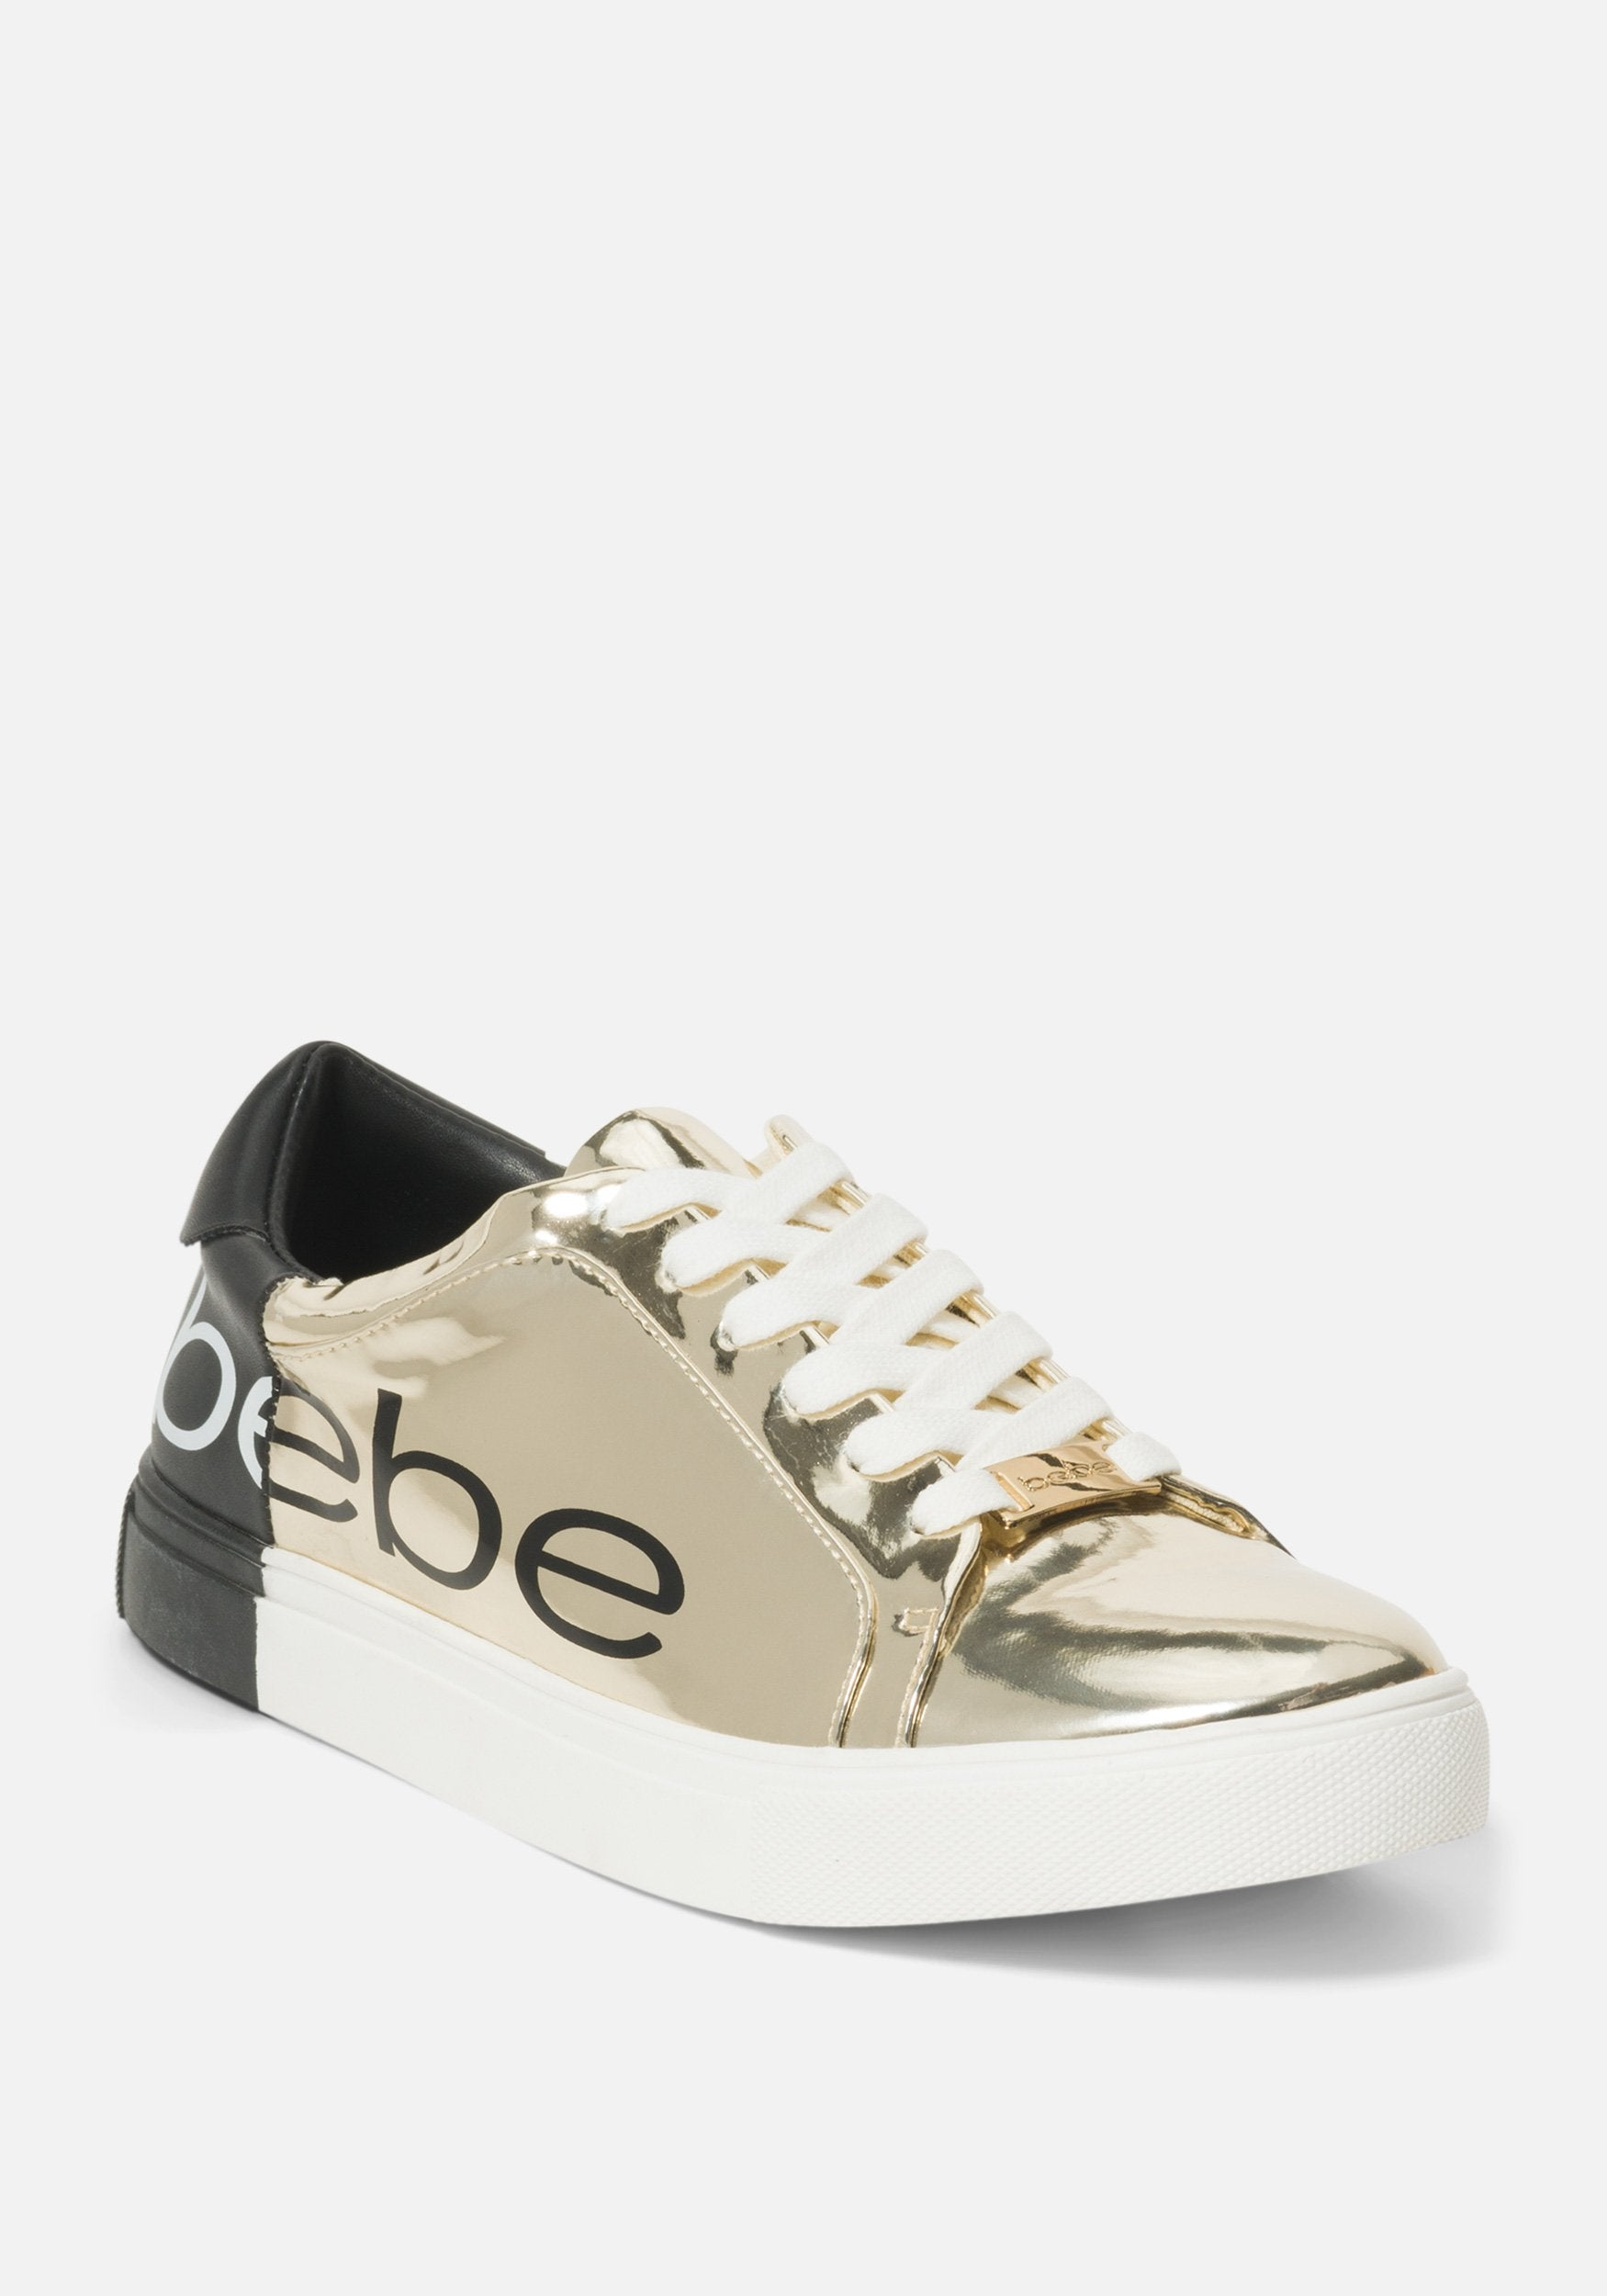 Image of Bebe Women's Charley Shoe, Size 9 in GOLD/BLACK Synthetic